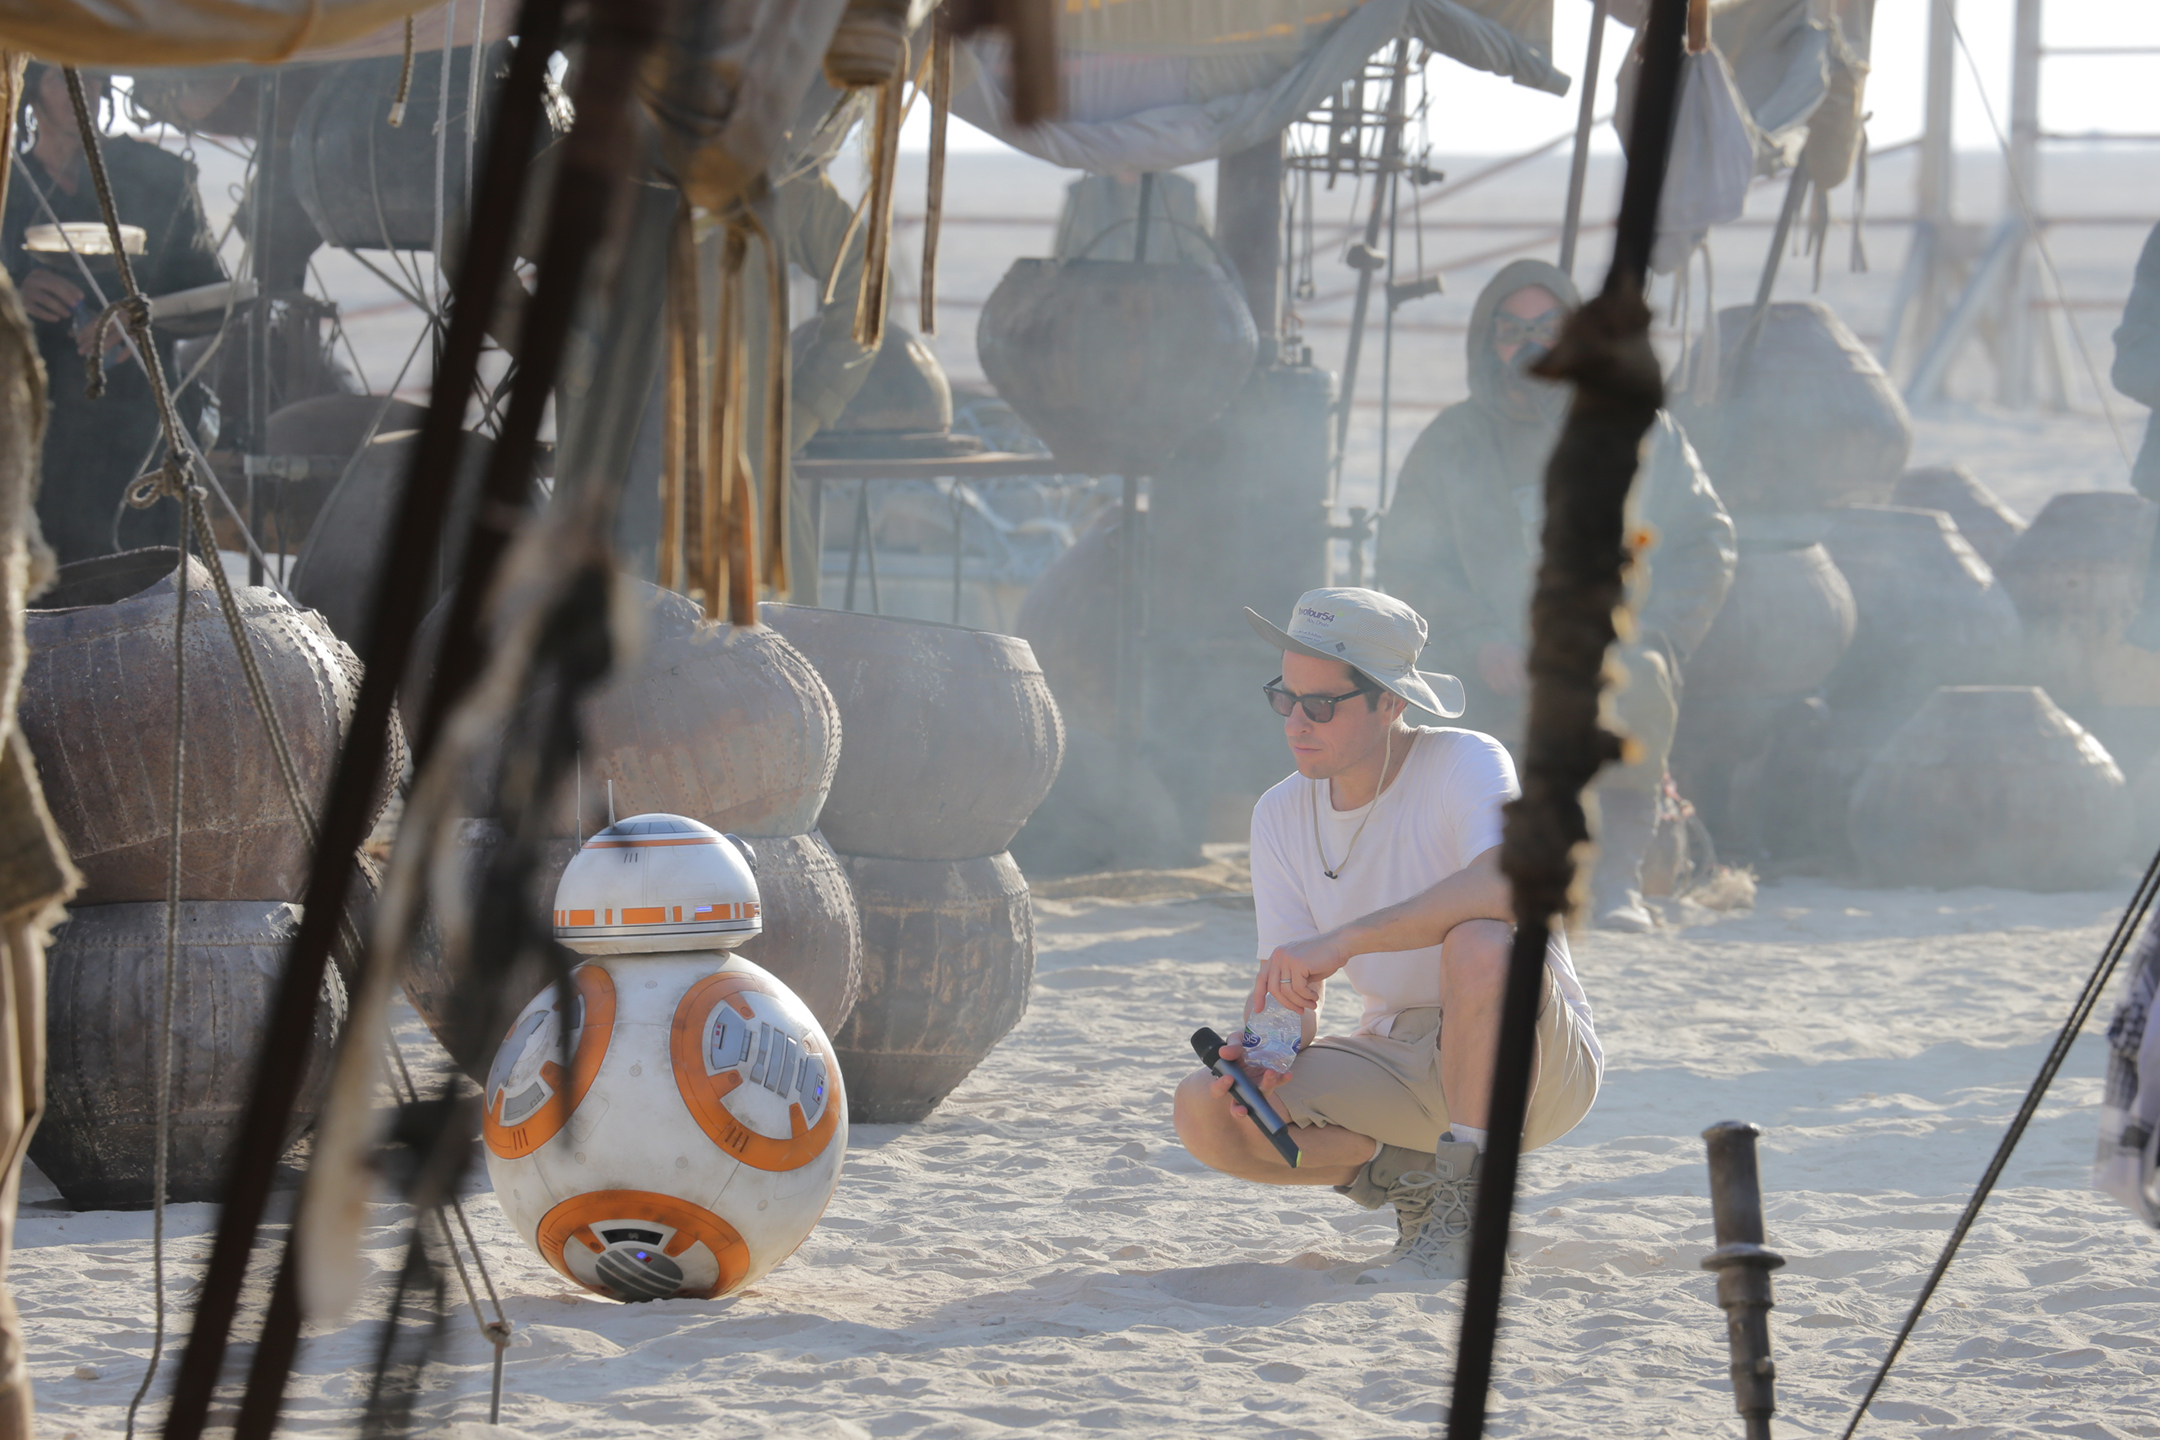 J.J. Abrams on the set of Star Wars: The Force Awakens with BB-8